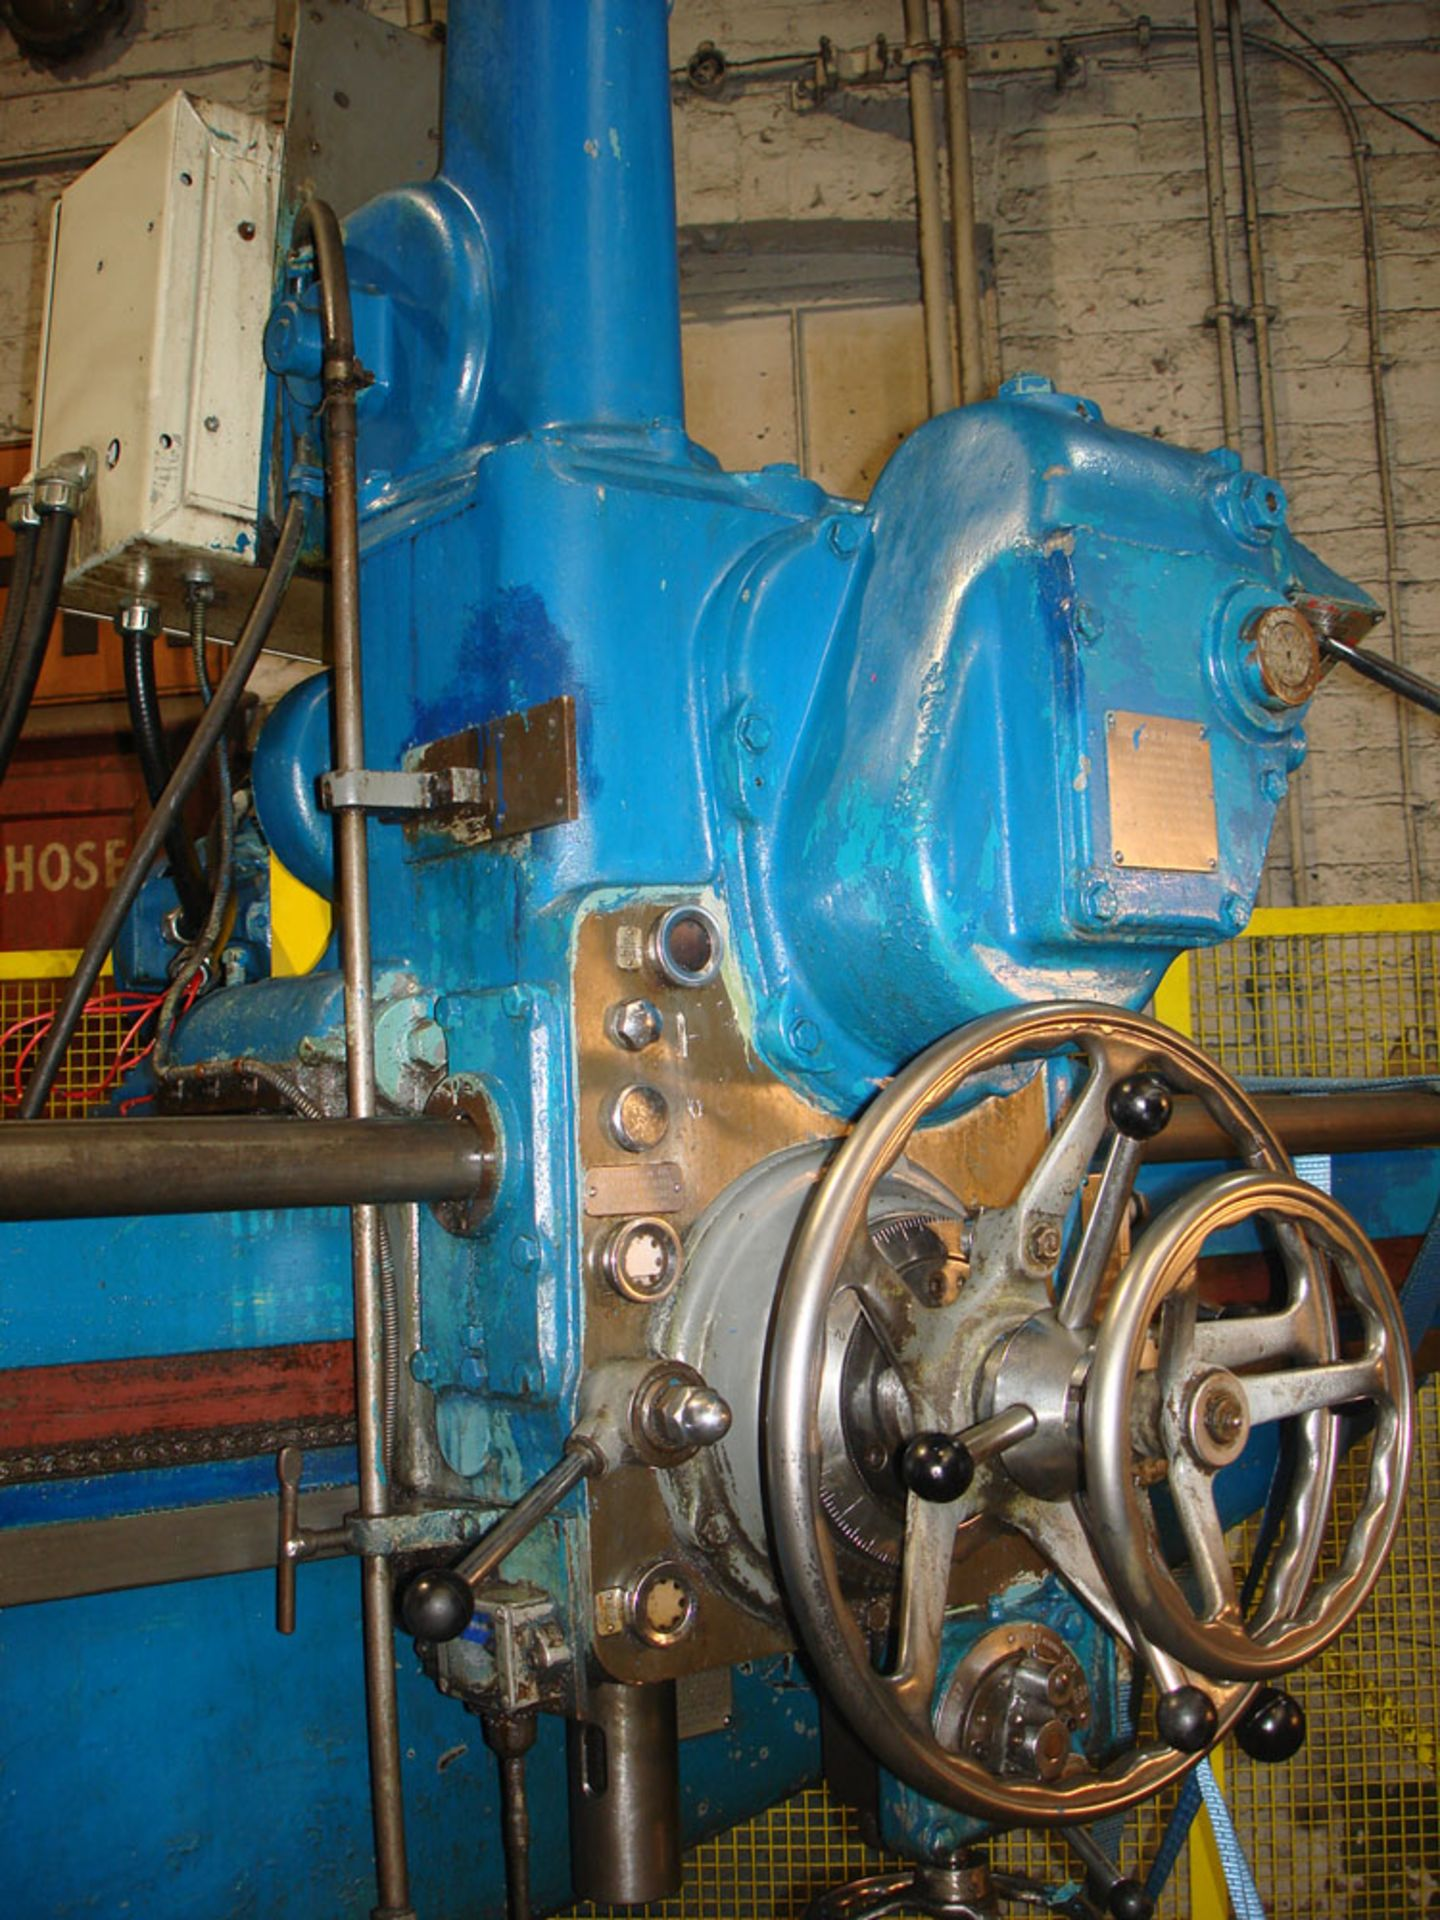 Asquith OD1 6ft Radial Arm Drill. Arm lenght 6ft. Spindle 5 Morse Taper. Speeds 8-800rpm. Box Table. - Image 3 of 7